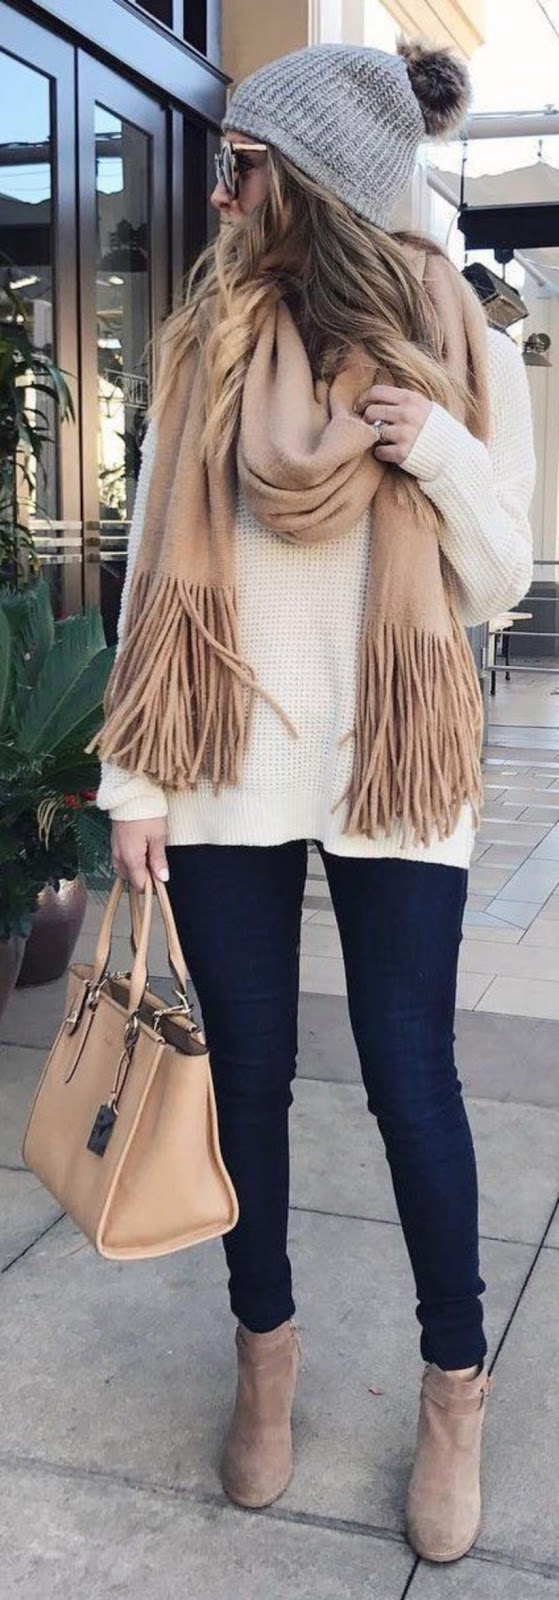 how to style a cashmere scarf : hat + white sweater + bag + black skinnies + boots